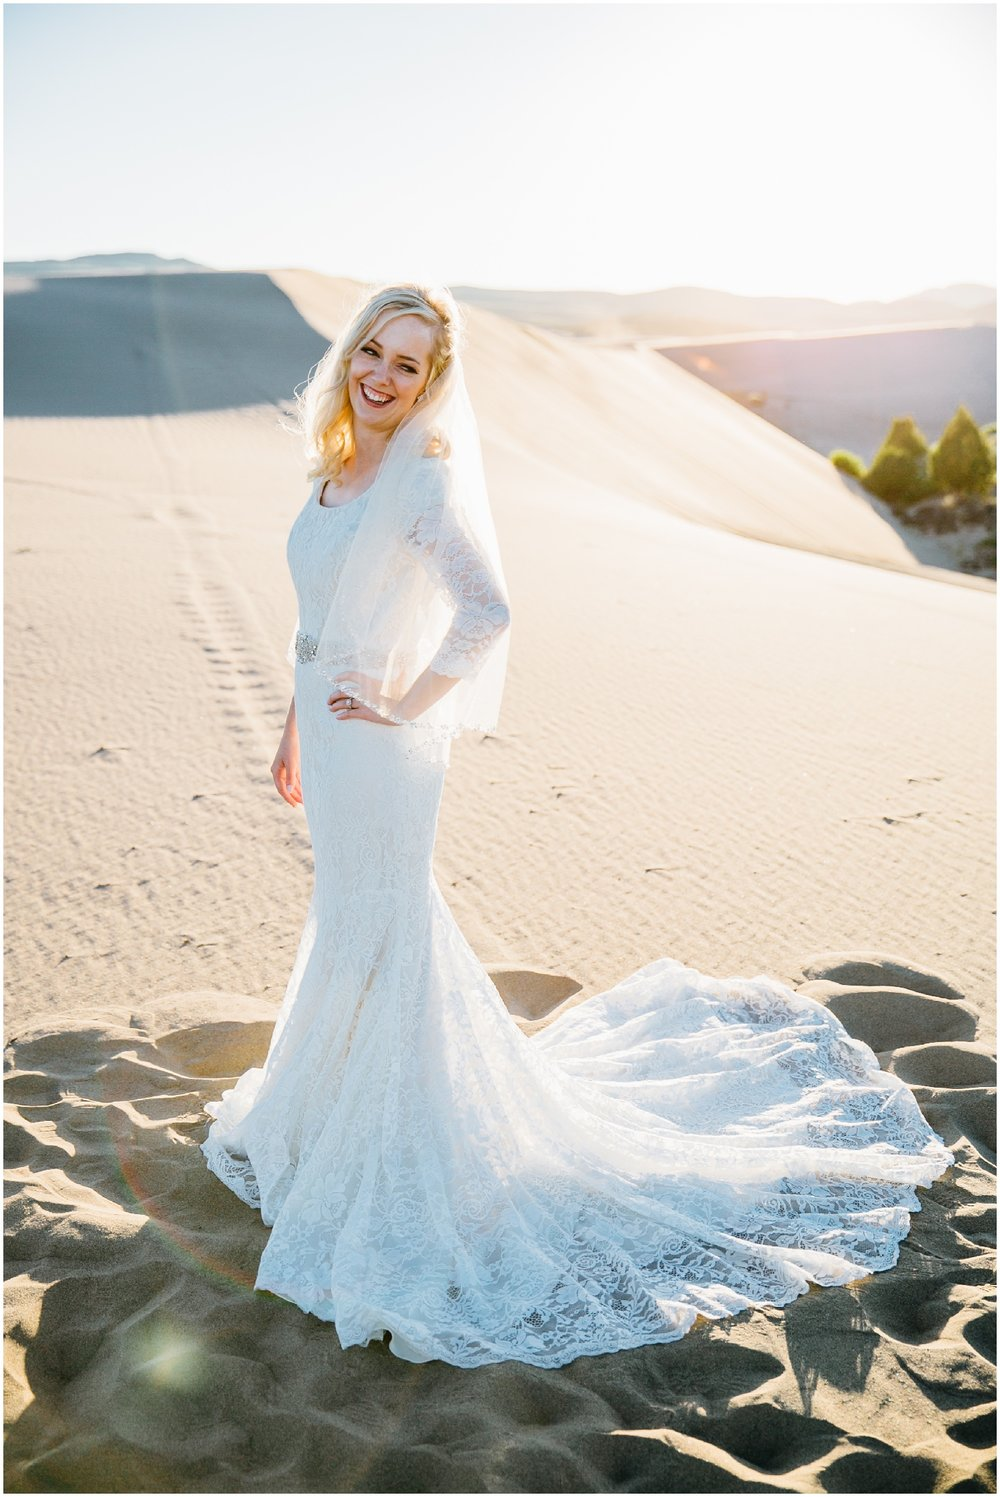 saint-anthony-sand-dunes-bridals-idaho-engagements-colorado-wyoming-wedding-photographer_0735.jpg